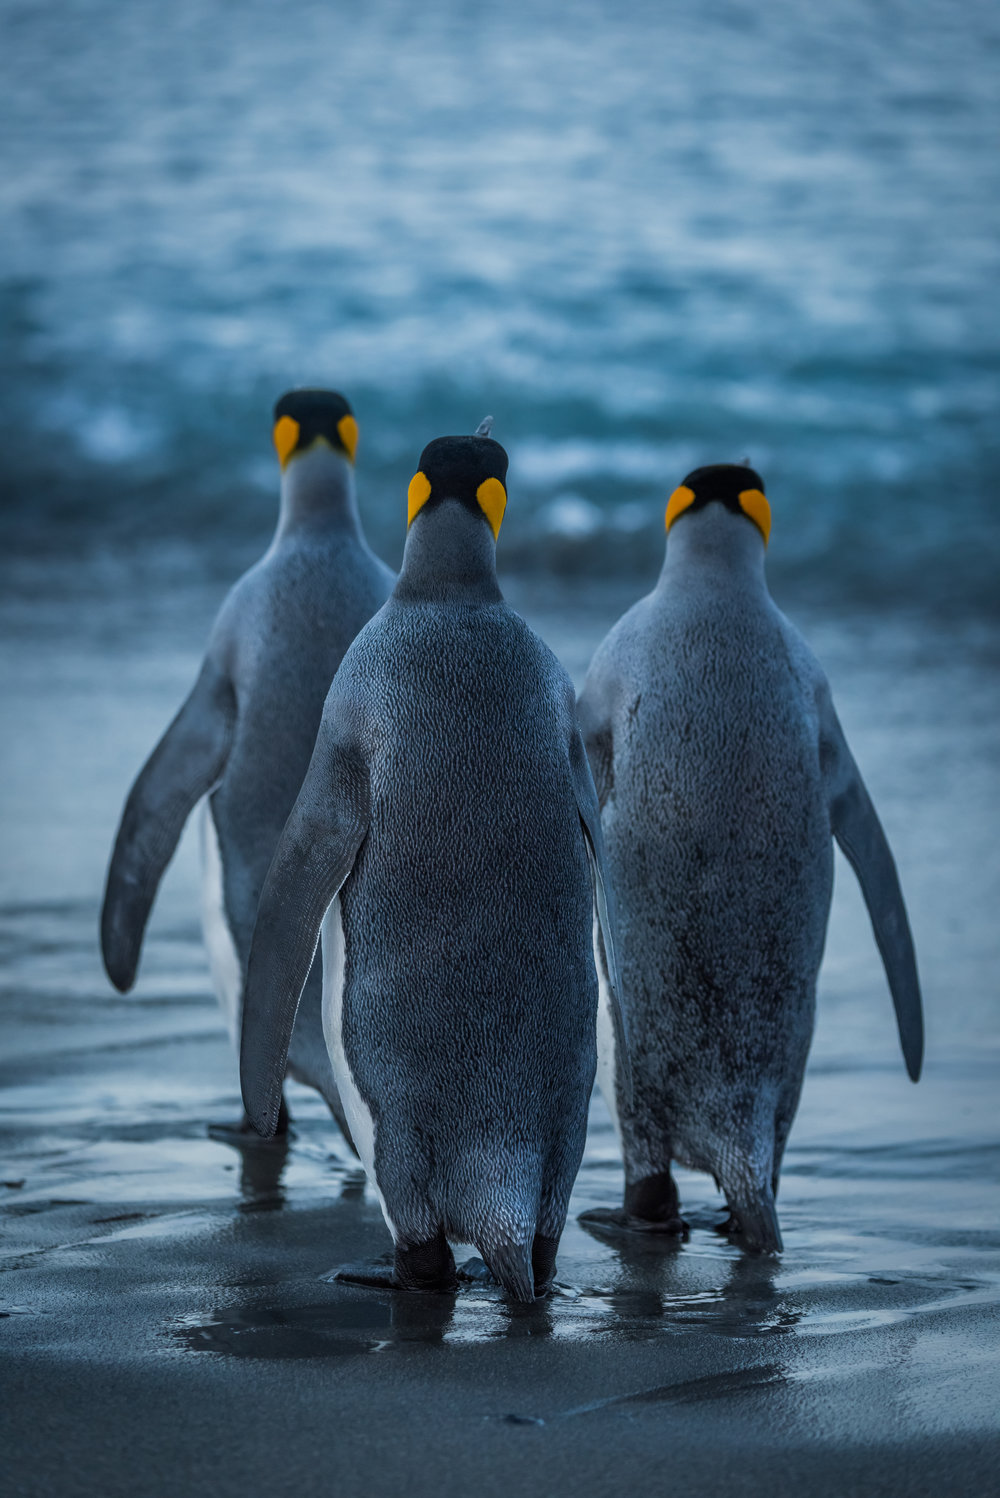 """""""We three kings of Orient are"""" Ola  """"Me and my buddies skinny-dipping!"""" Angie"""